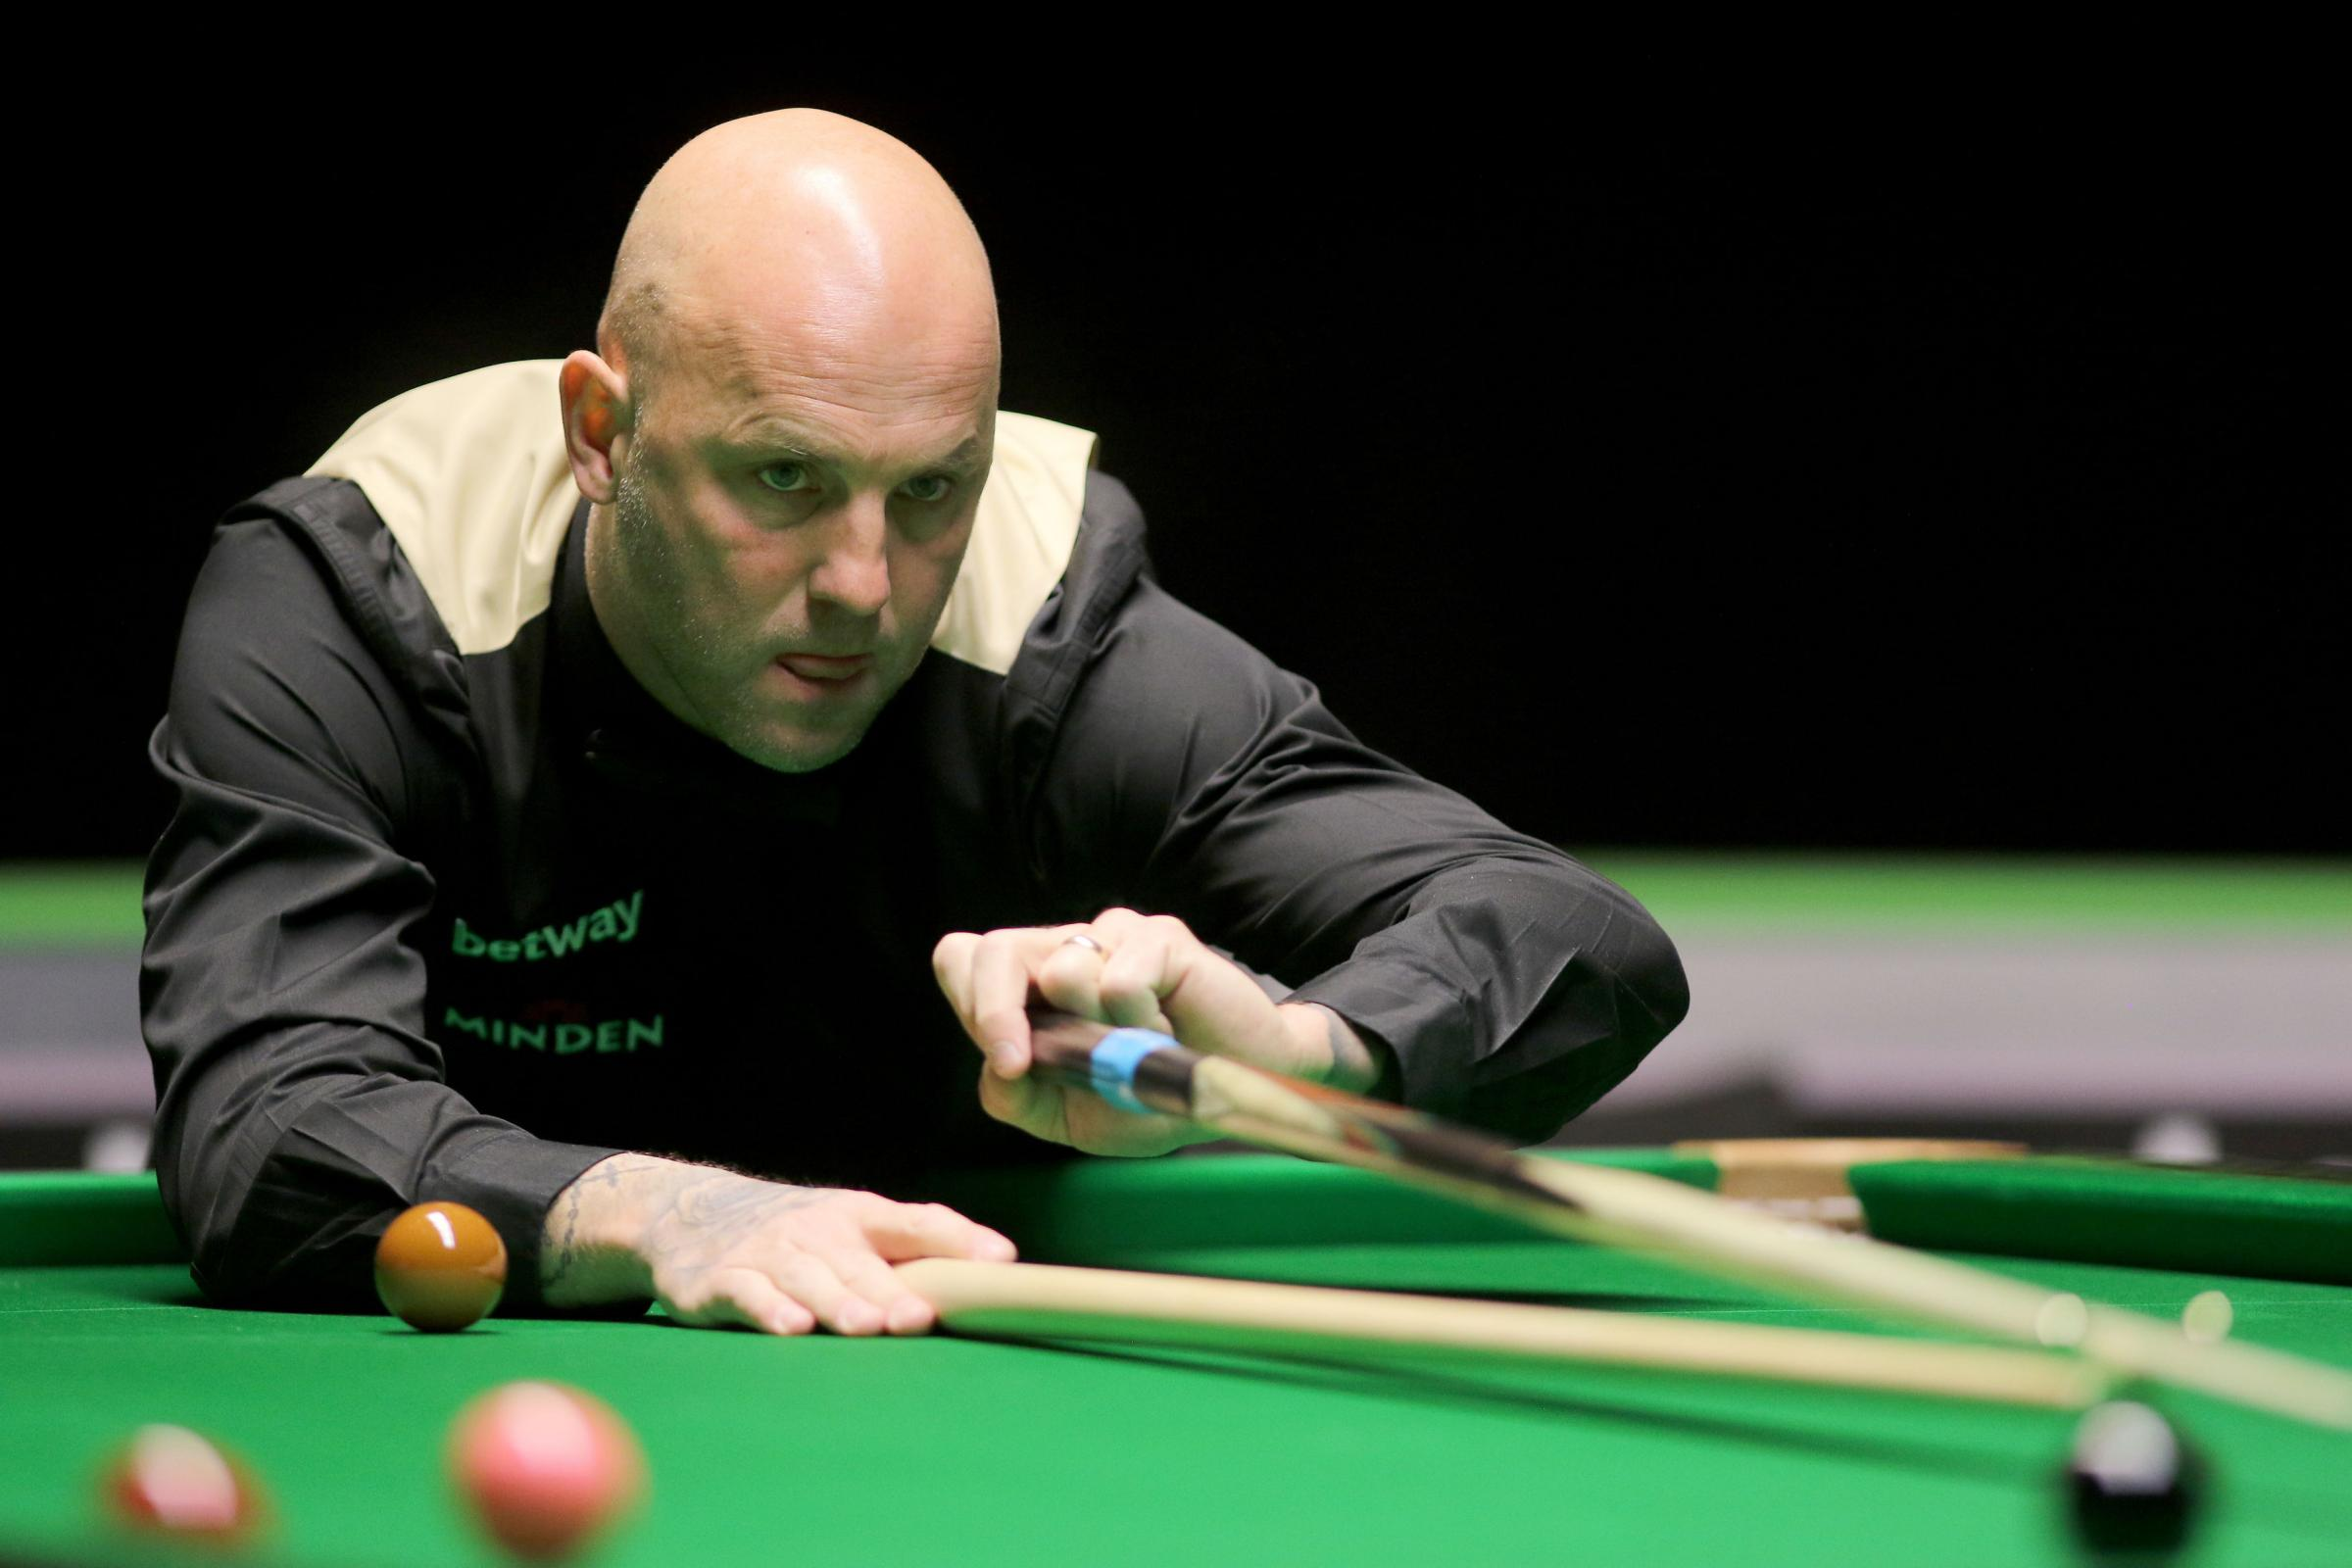 Mark King edged out John Higgins in a Barbican thriller at the Betway UK Championship